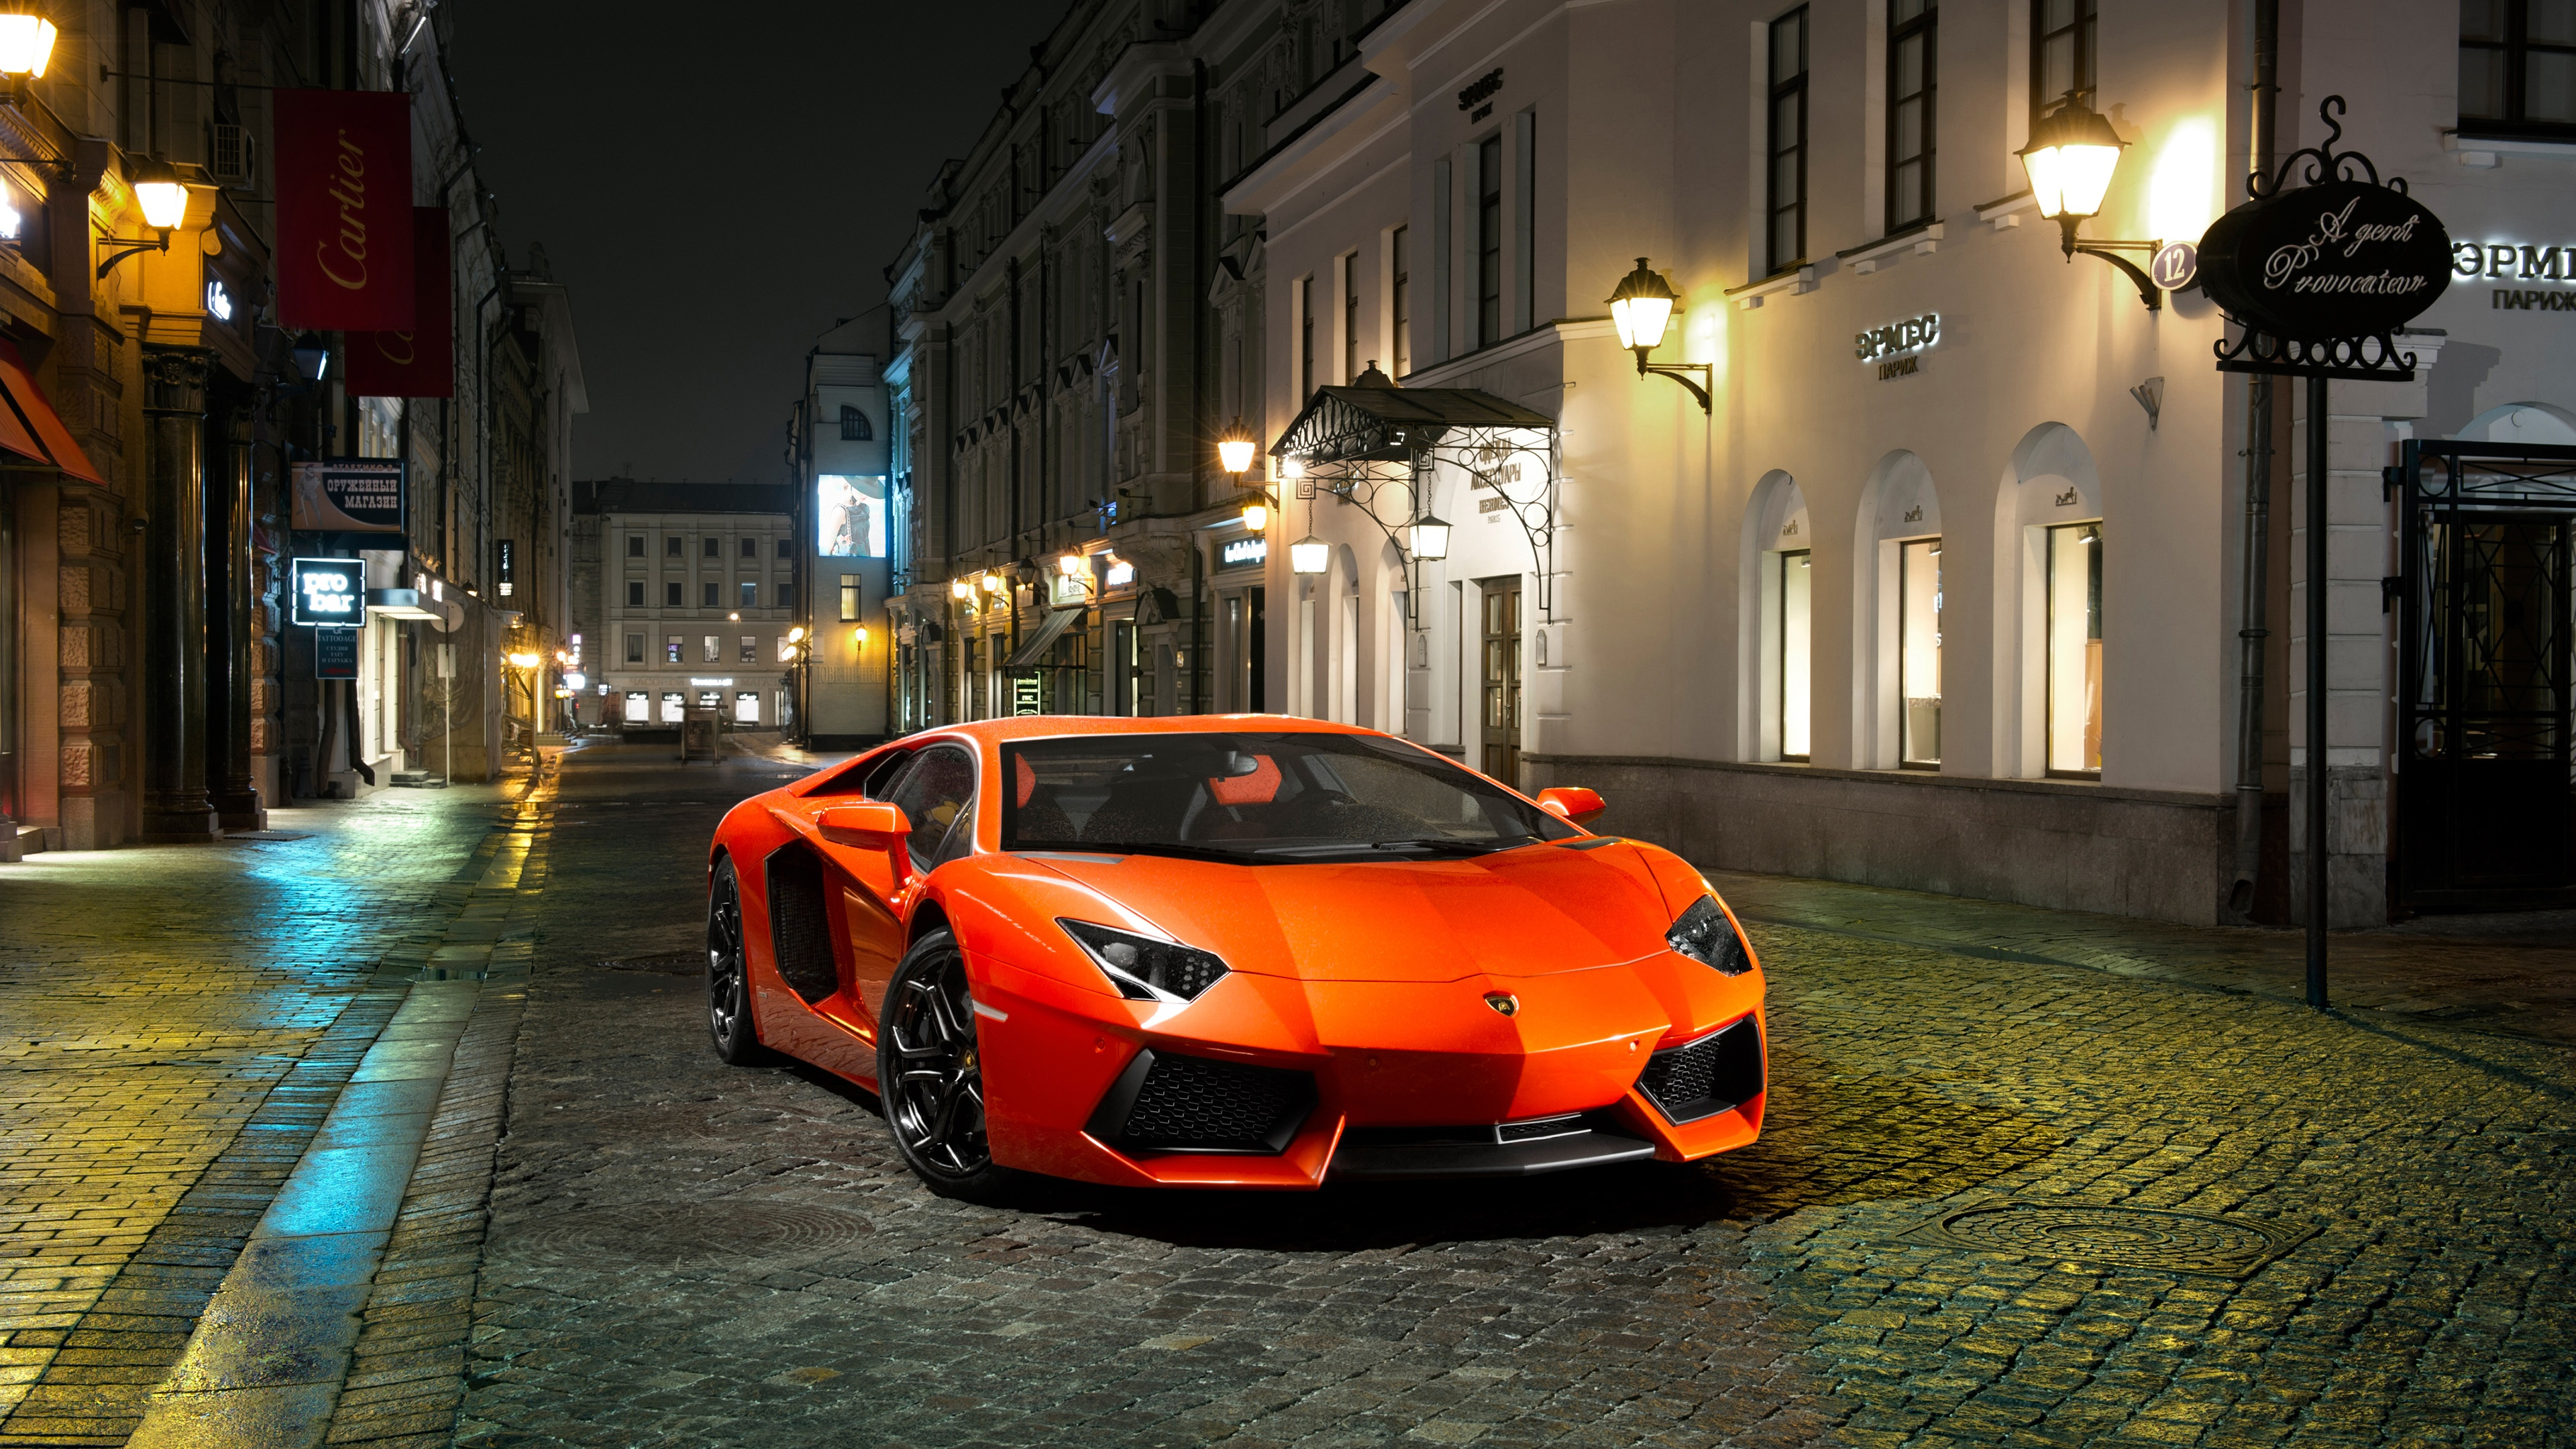 Lamborghini in a night street wallpaper